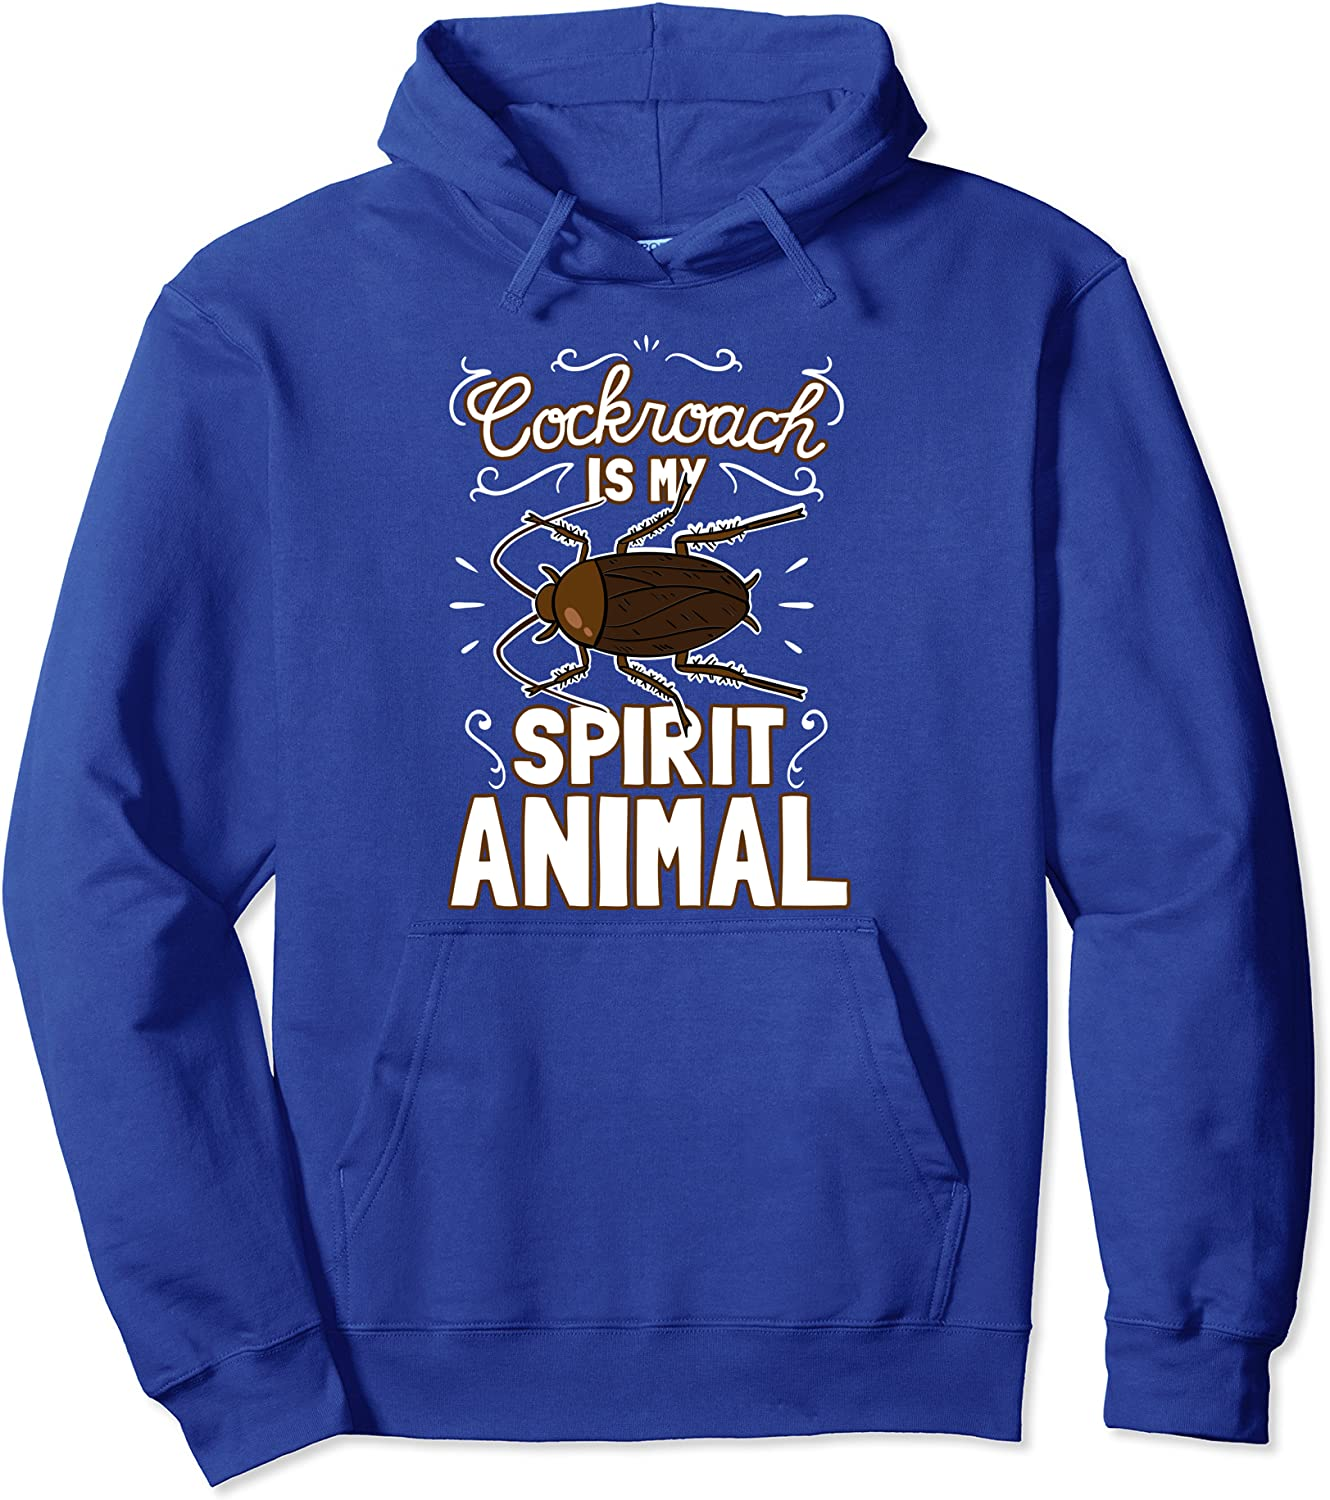 Entomology Design For Insect Fans - Cockroach Spirit Animal Pullover Hoodie-TH